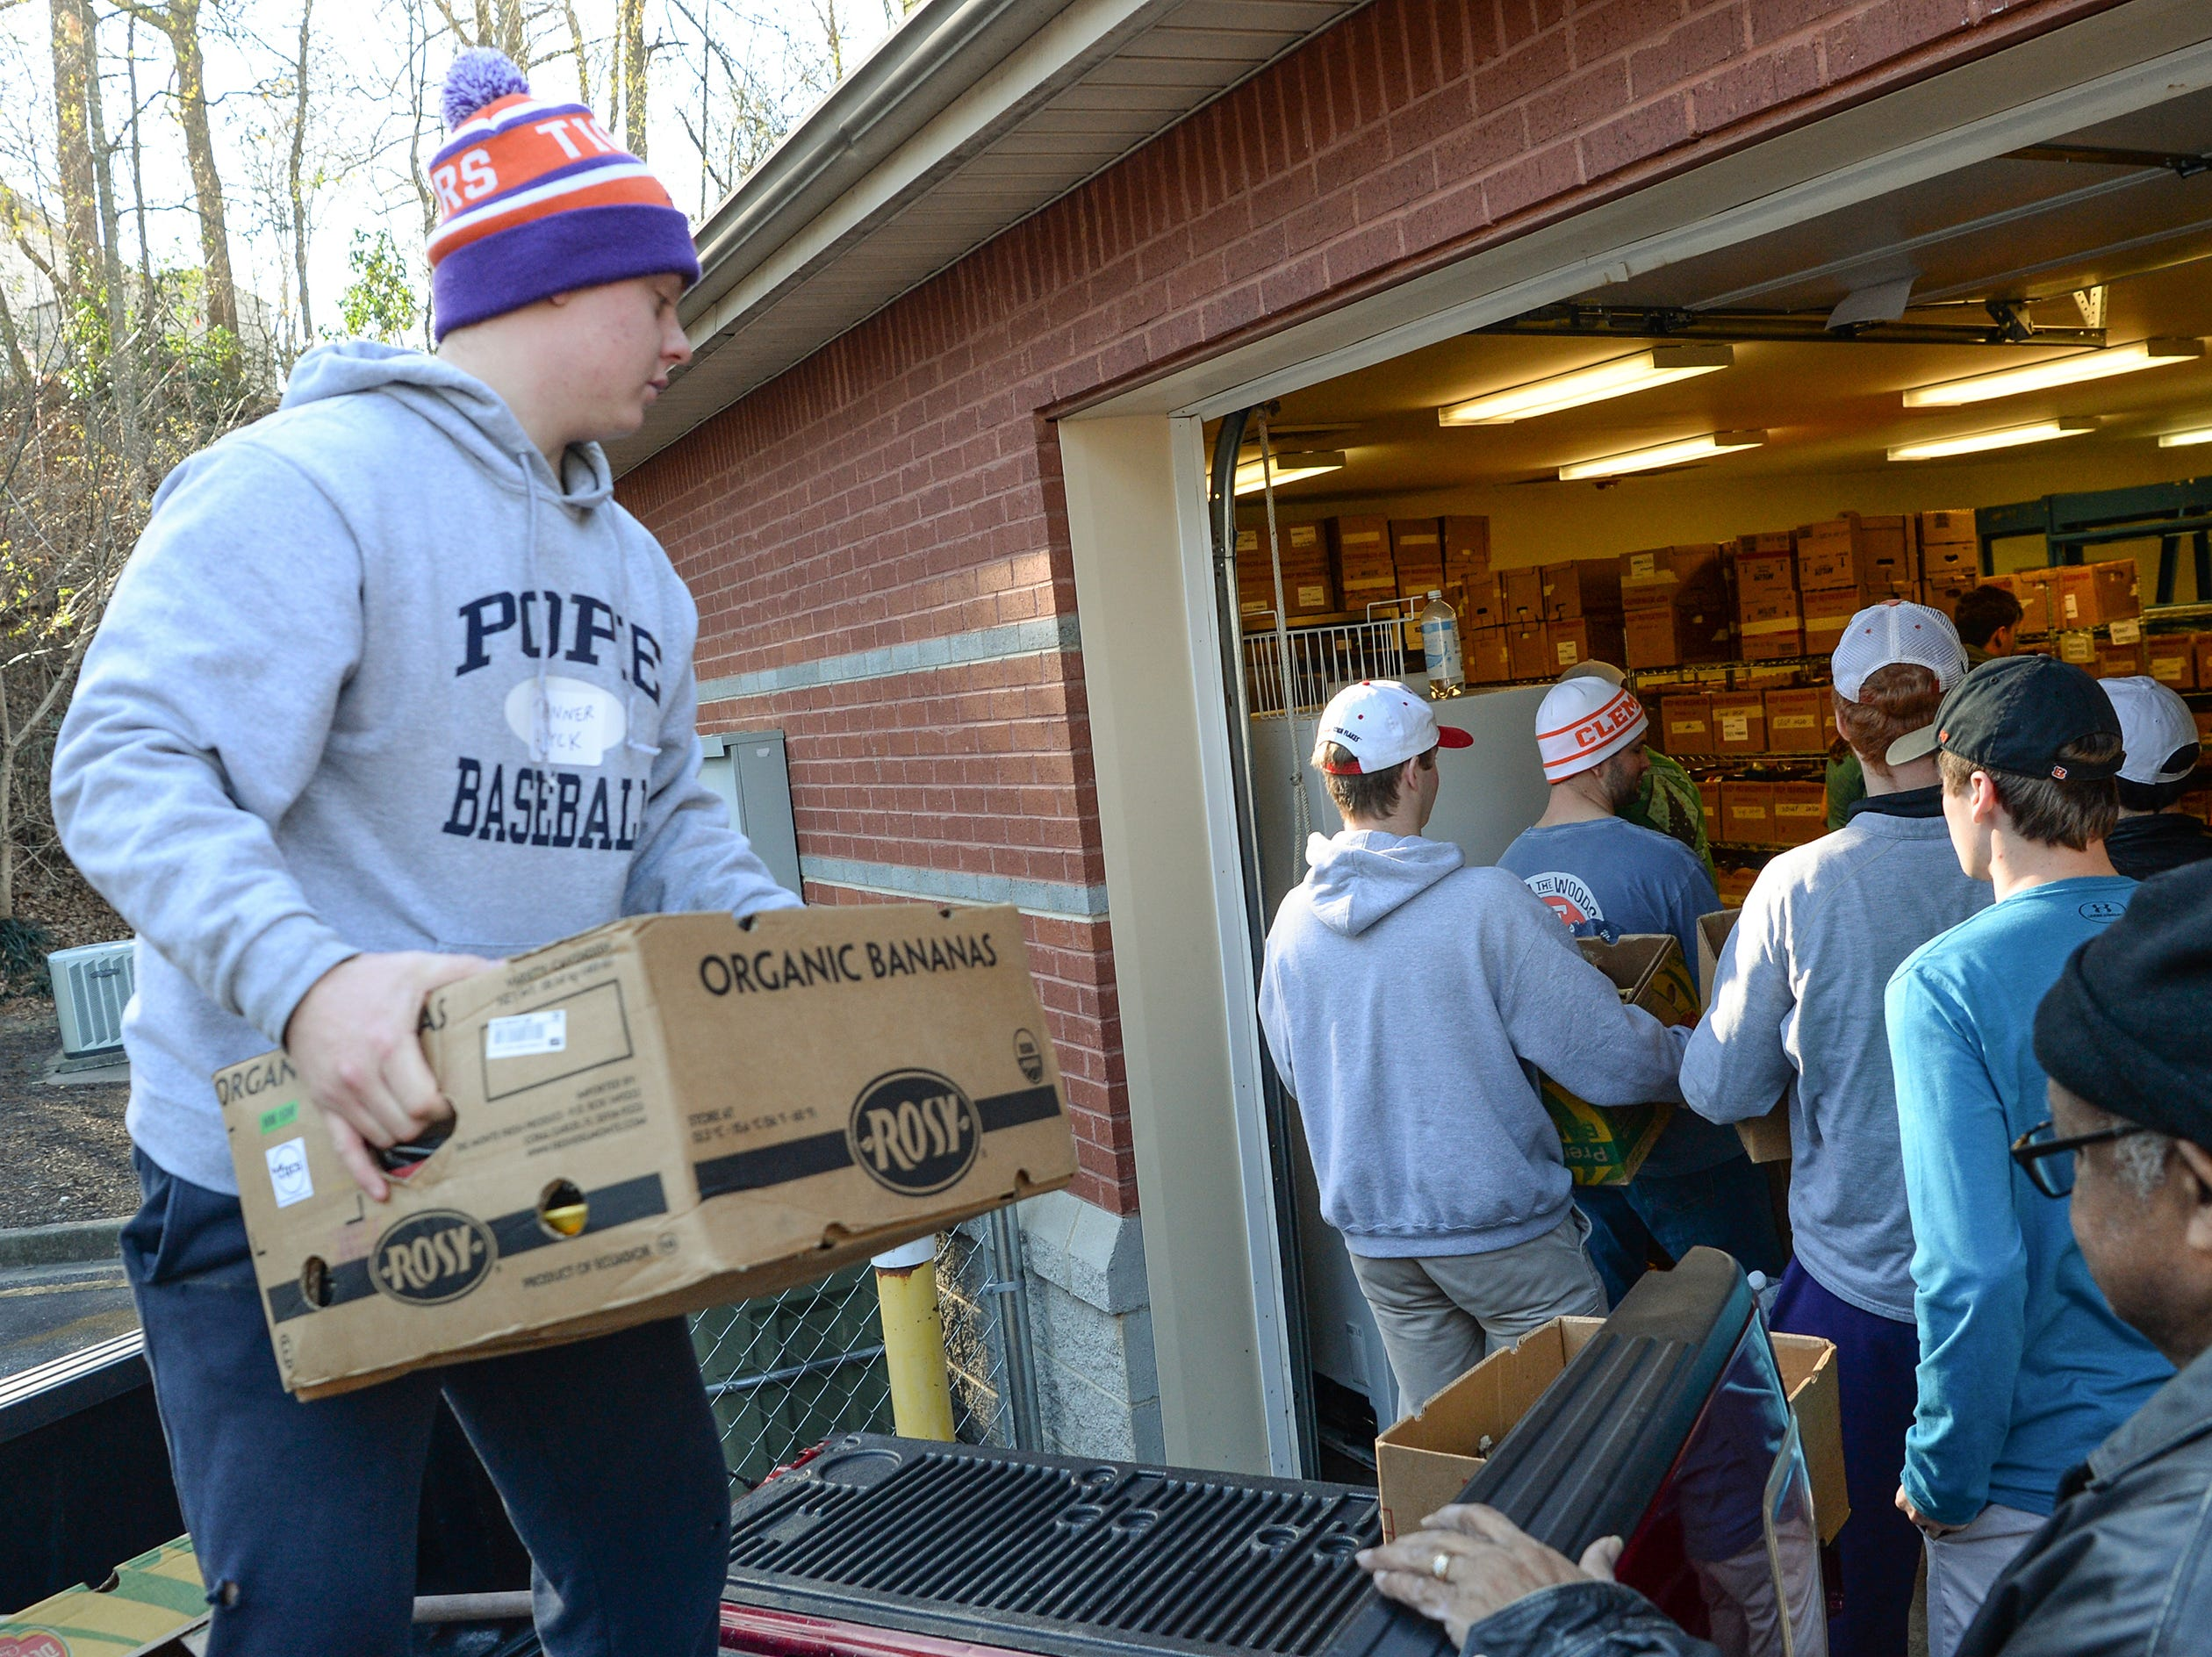 Tanner Hurck, left, of Phi Gamma Delta fraternity helps bring in donated food supplies at Clemson Community Care, during the Clemson University Martin Luther King, Jr. Service Day in Clemson January 21, 2019.